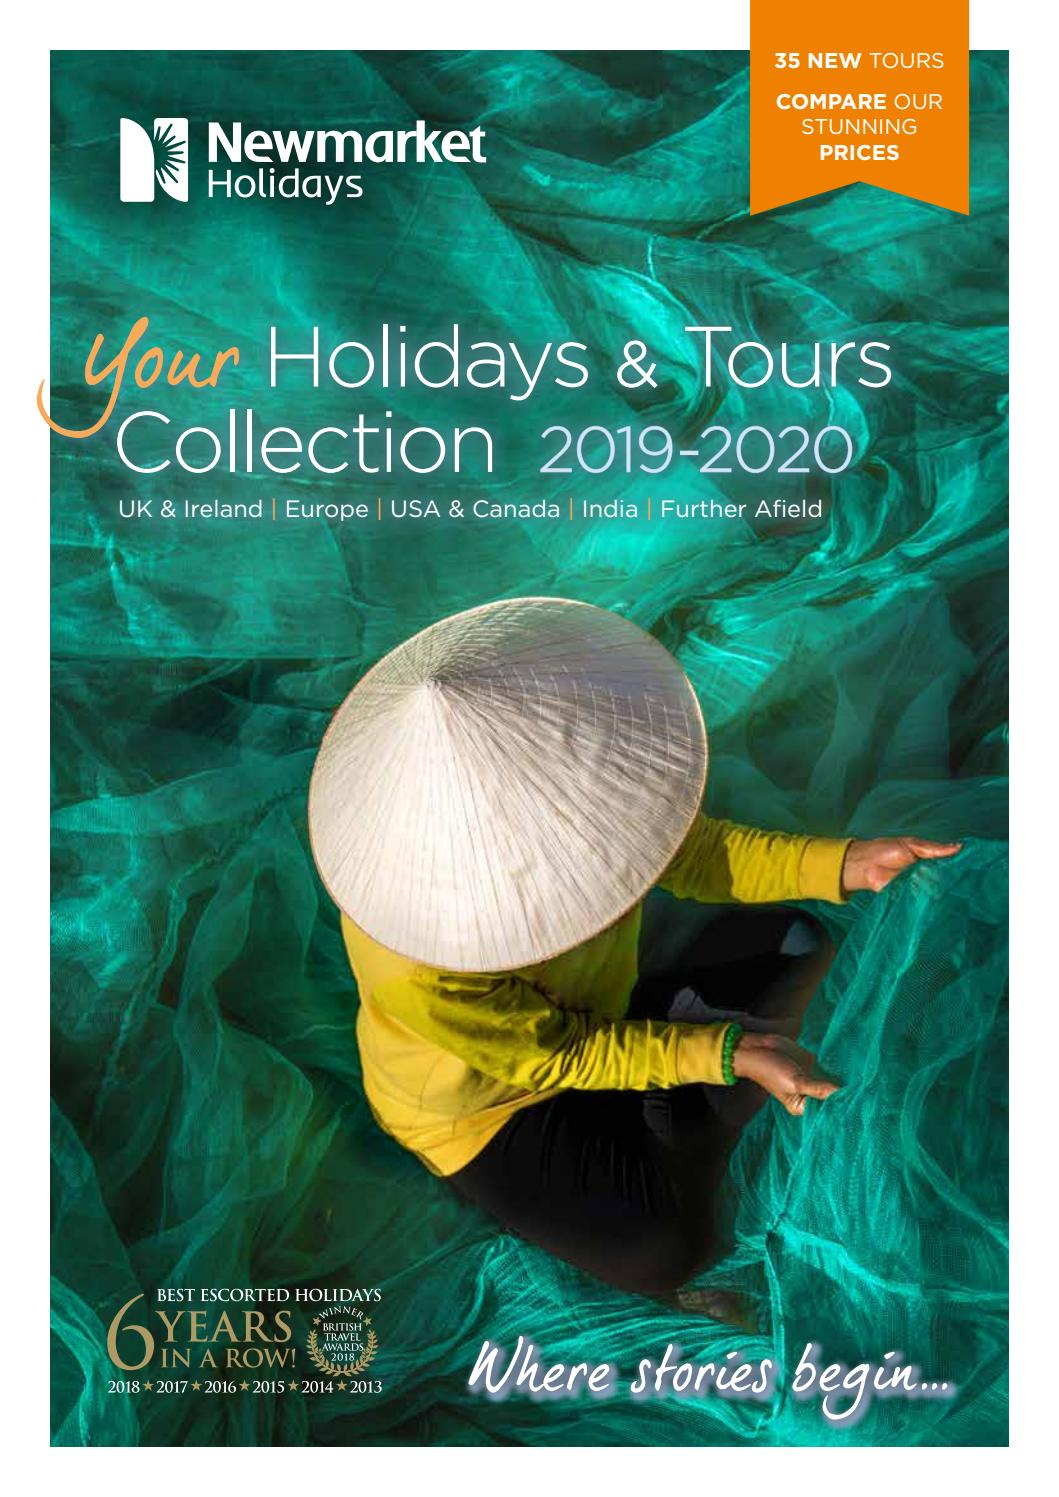 Caminetto Grill Chianciano Your Holidays Tours Collection 2019 2020